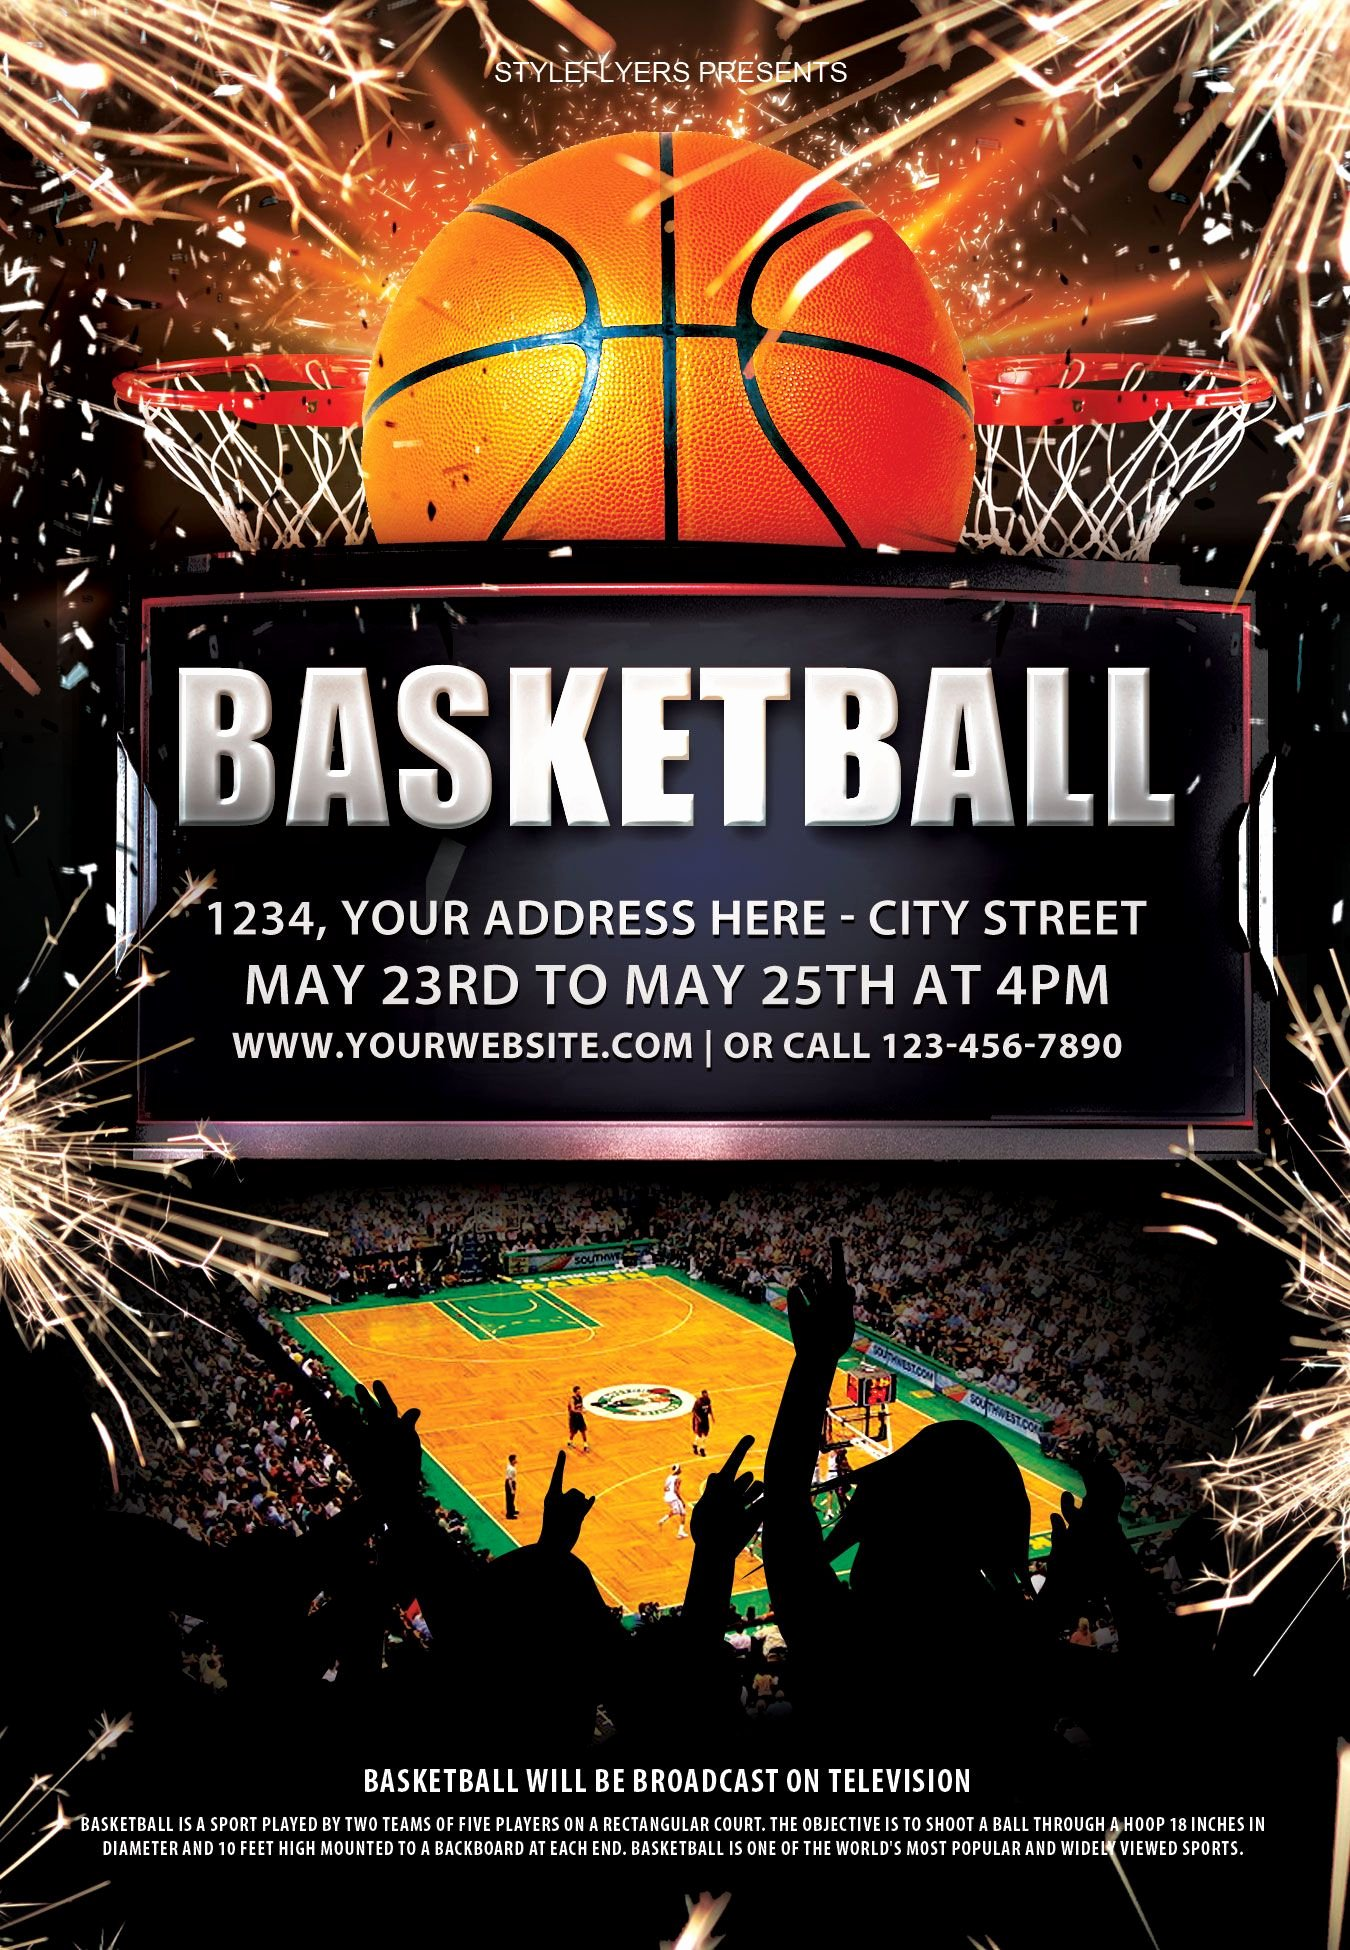 Free Basketball Flyer Template Inspirational Basketball Psd Flyer Template